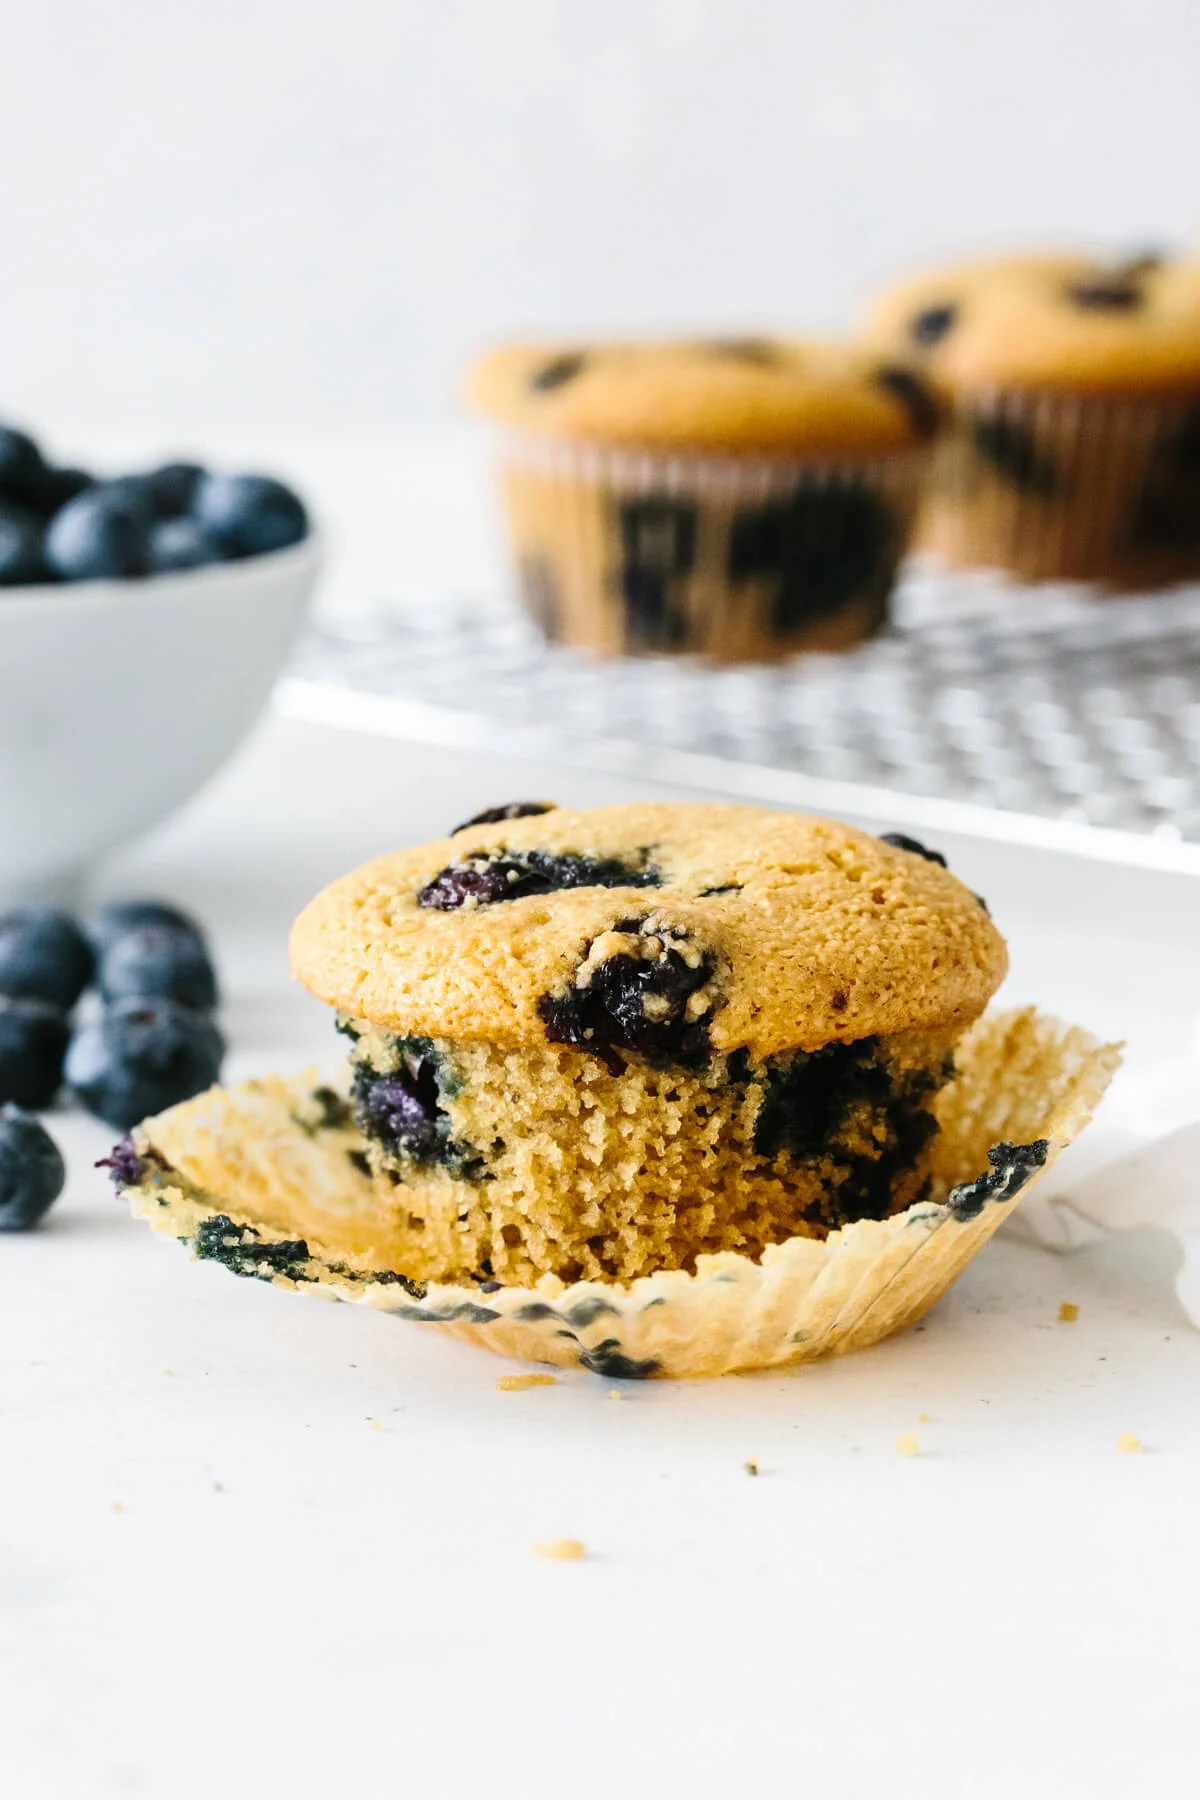 One paleo blueberry muffin with wrapper peeled.